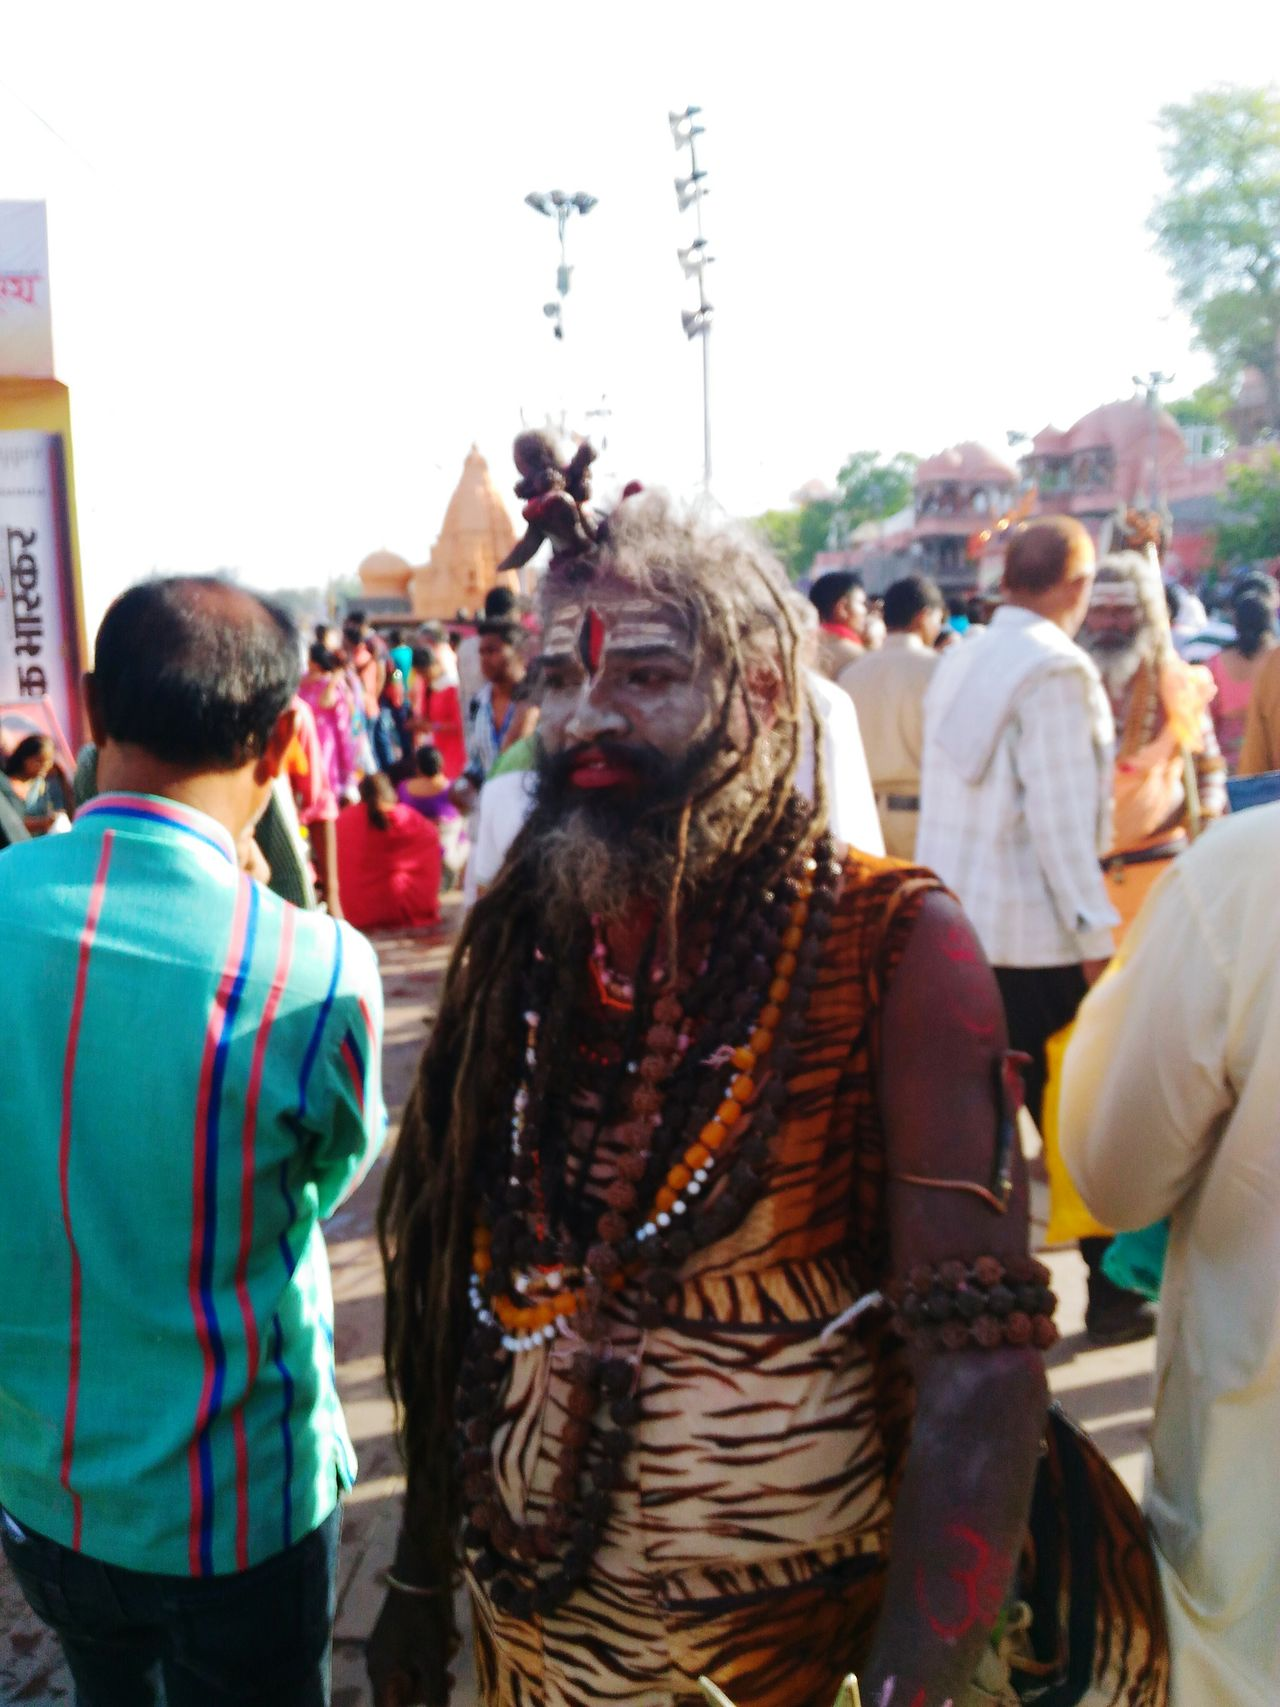 Baba India Sadhu Of India Shadhu Akhada Kumbh 2016 Ujjain Shiva Lord Shiva Lord Shiva On Earth Simhastha Festival ,Ujjain ,India Showing Imperfection Up Close Street Photography The Great Outdoors With Adobe The Portraitist - 2016 EyeEm Awards